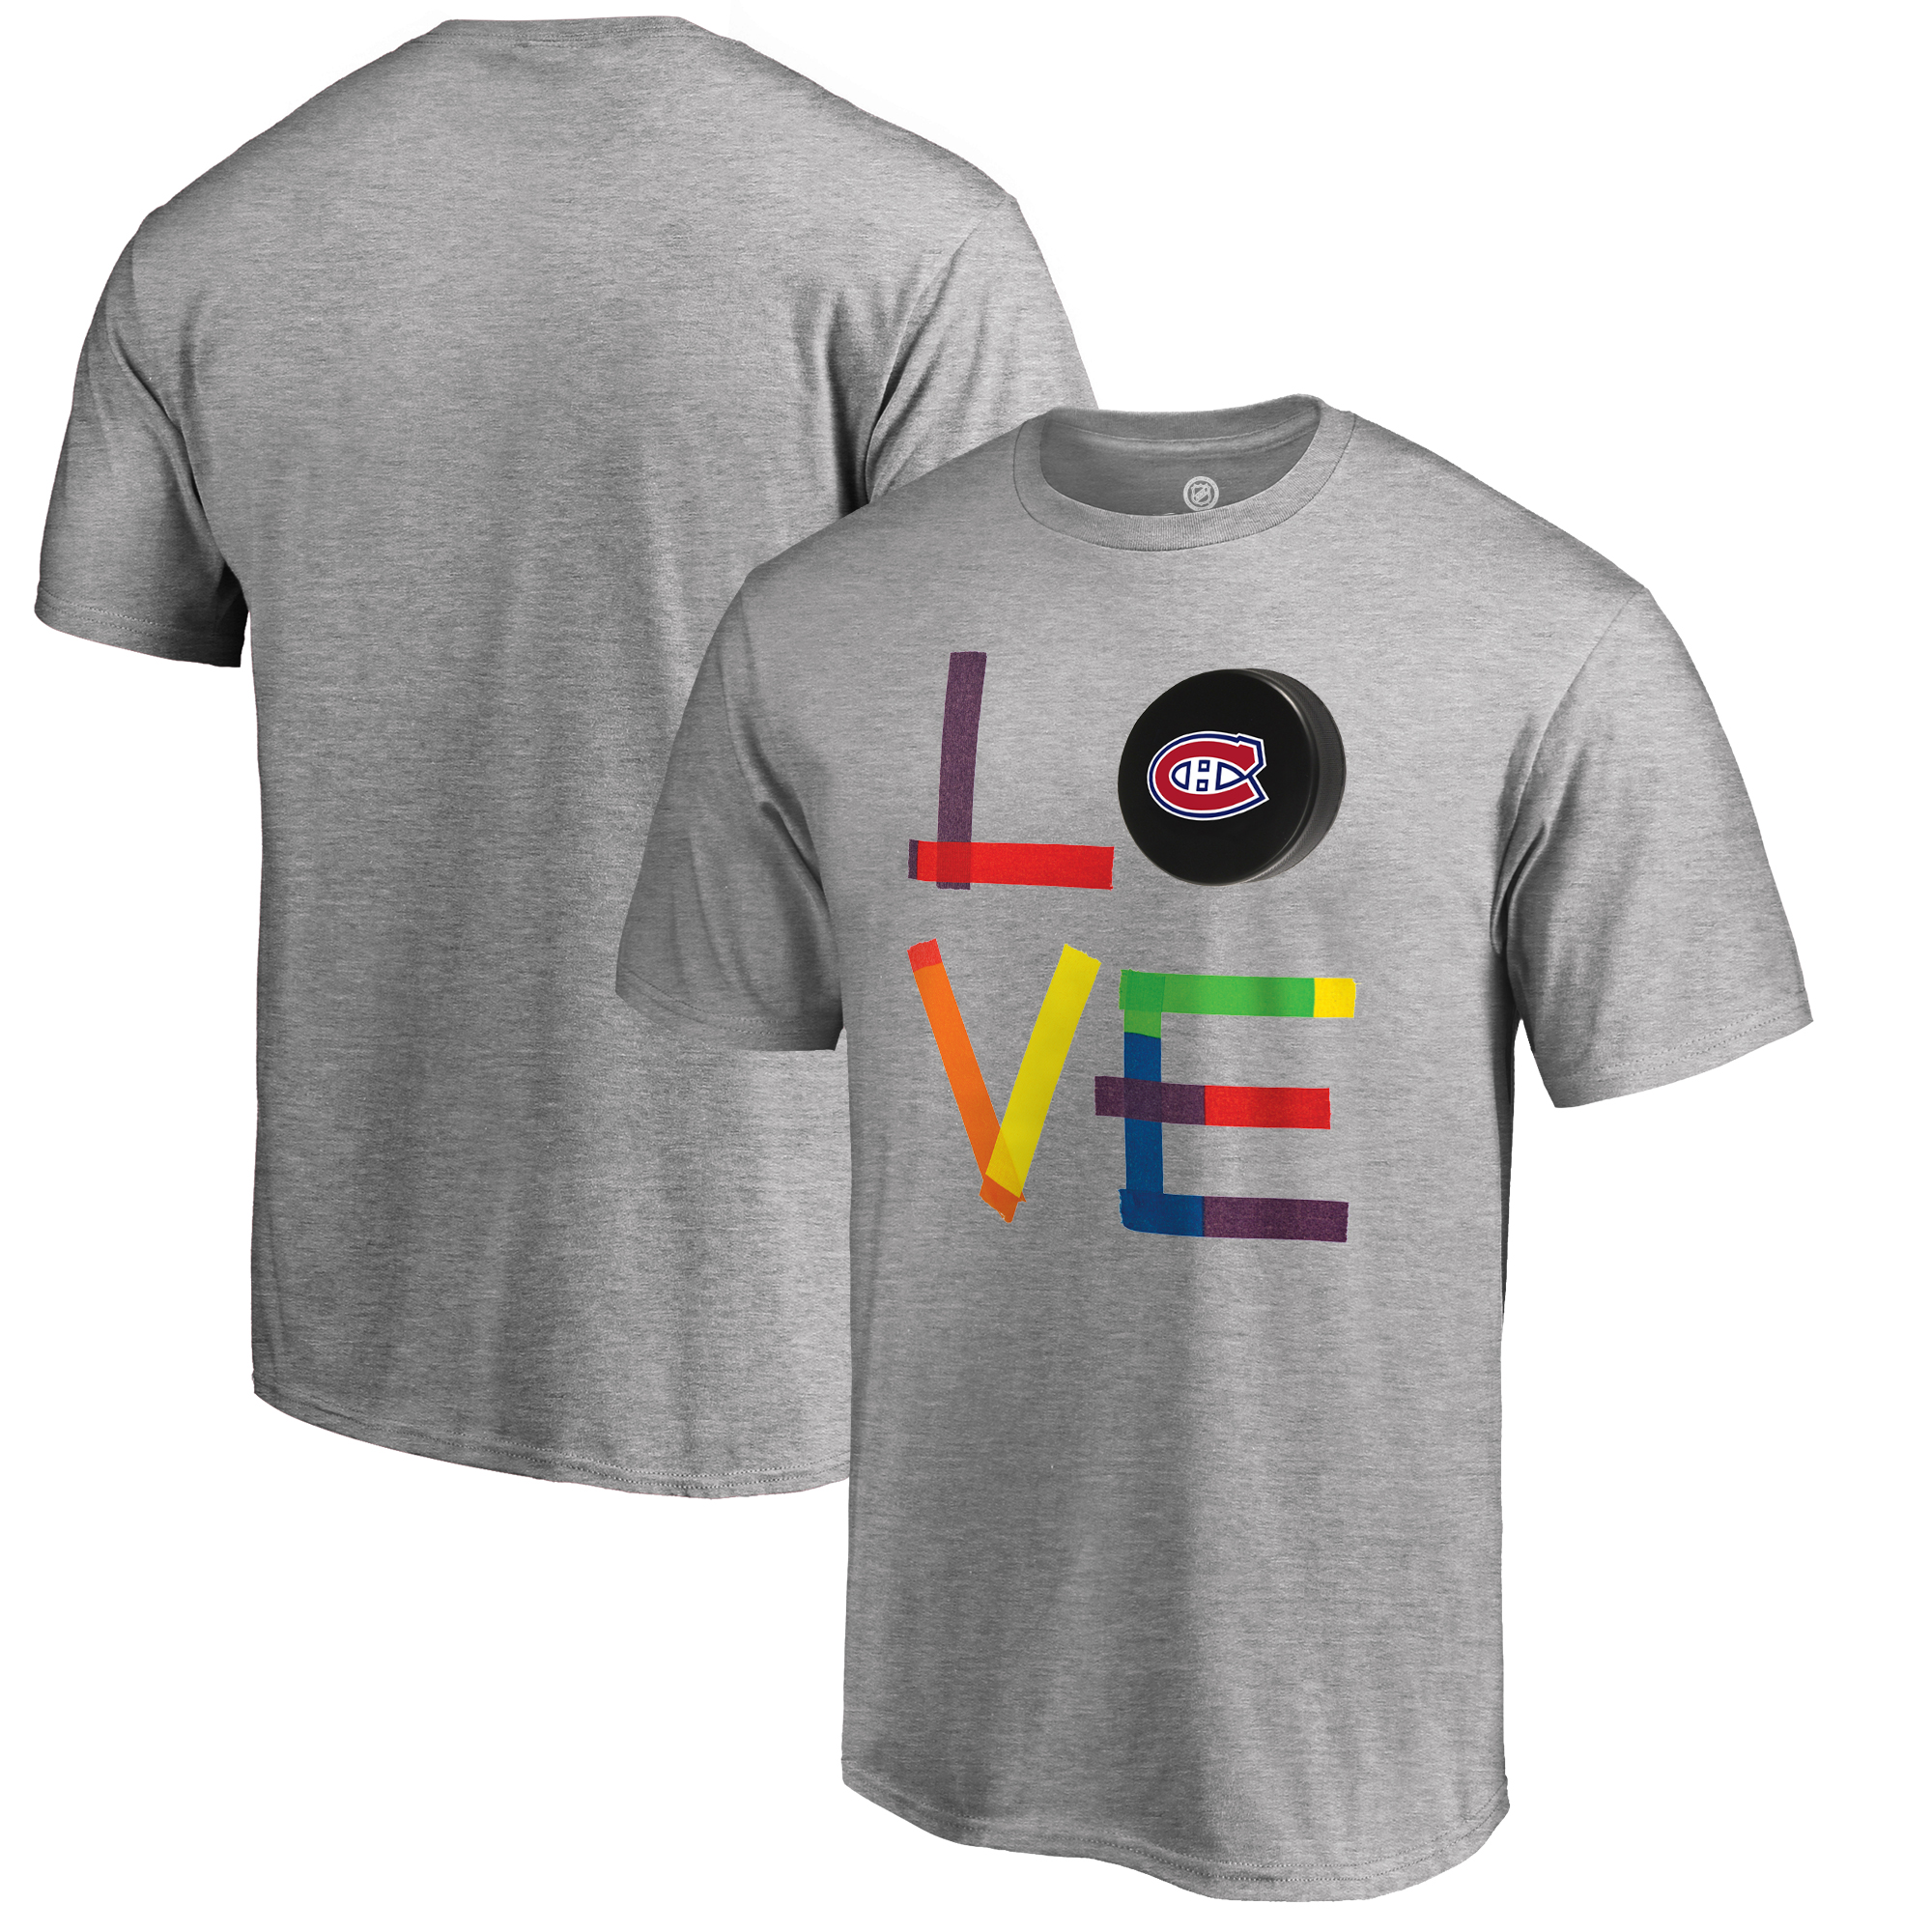 Montreal Canadiens Fanatics Branded Hockey Is For Everyone Love Square Big & Tall T-Shirt - Heather Gray